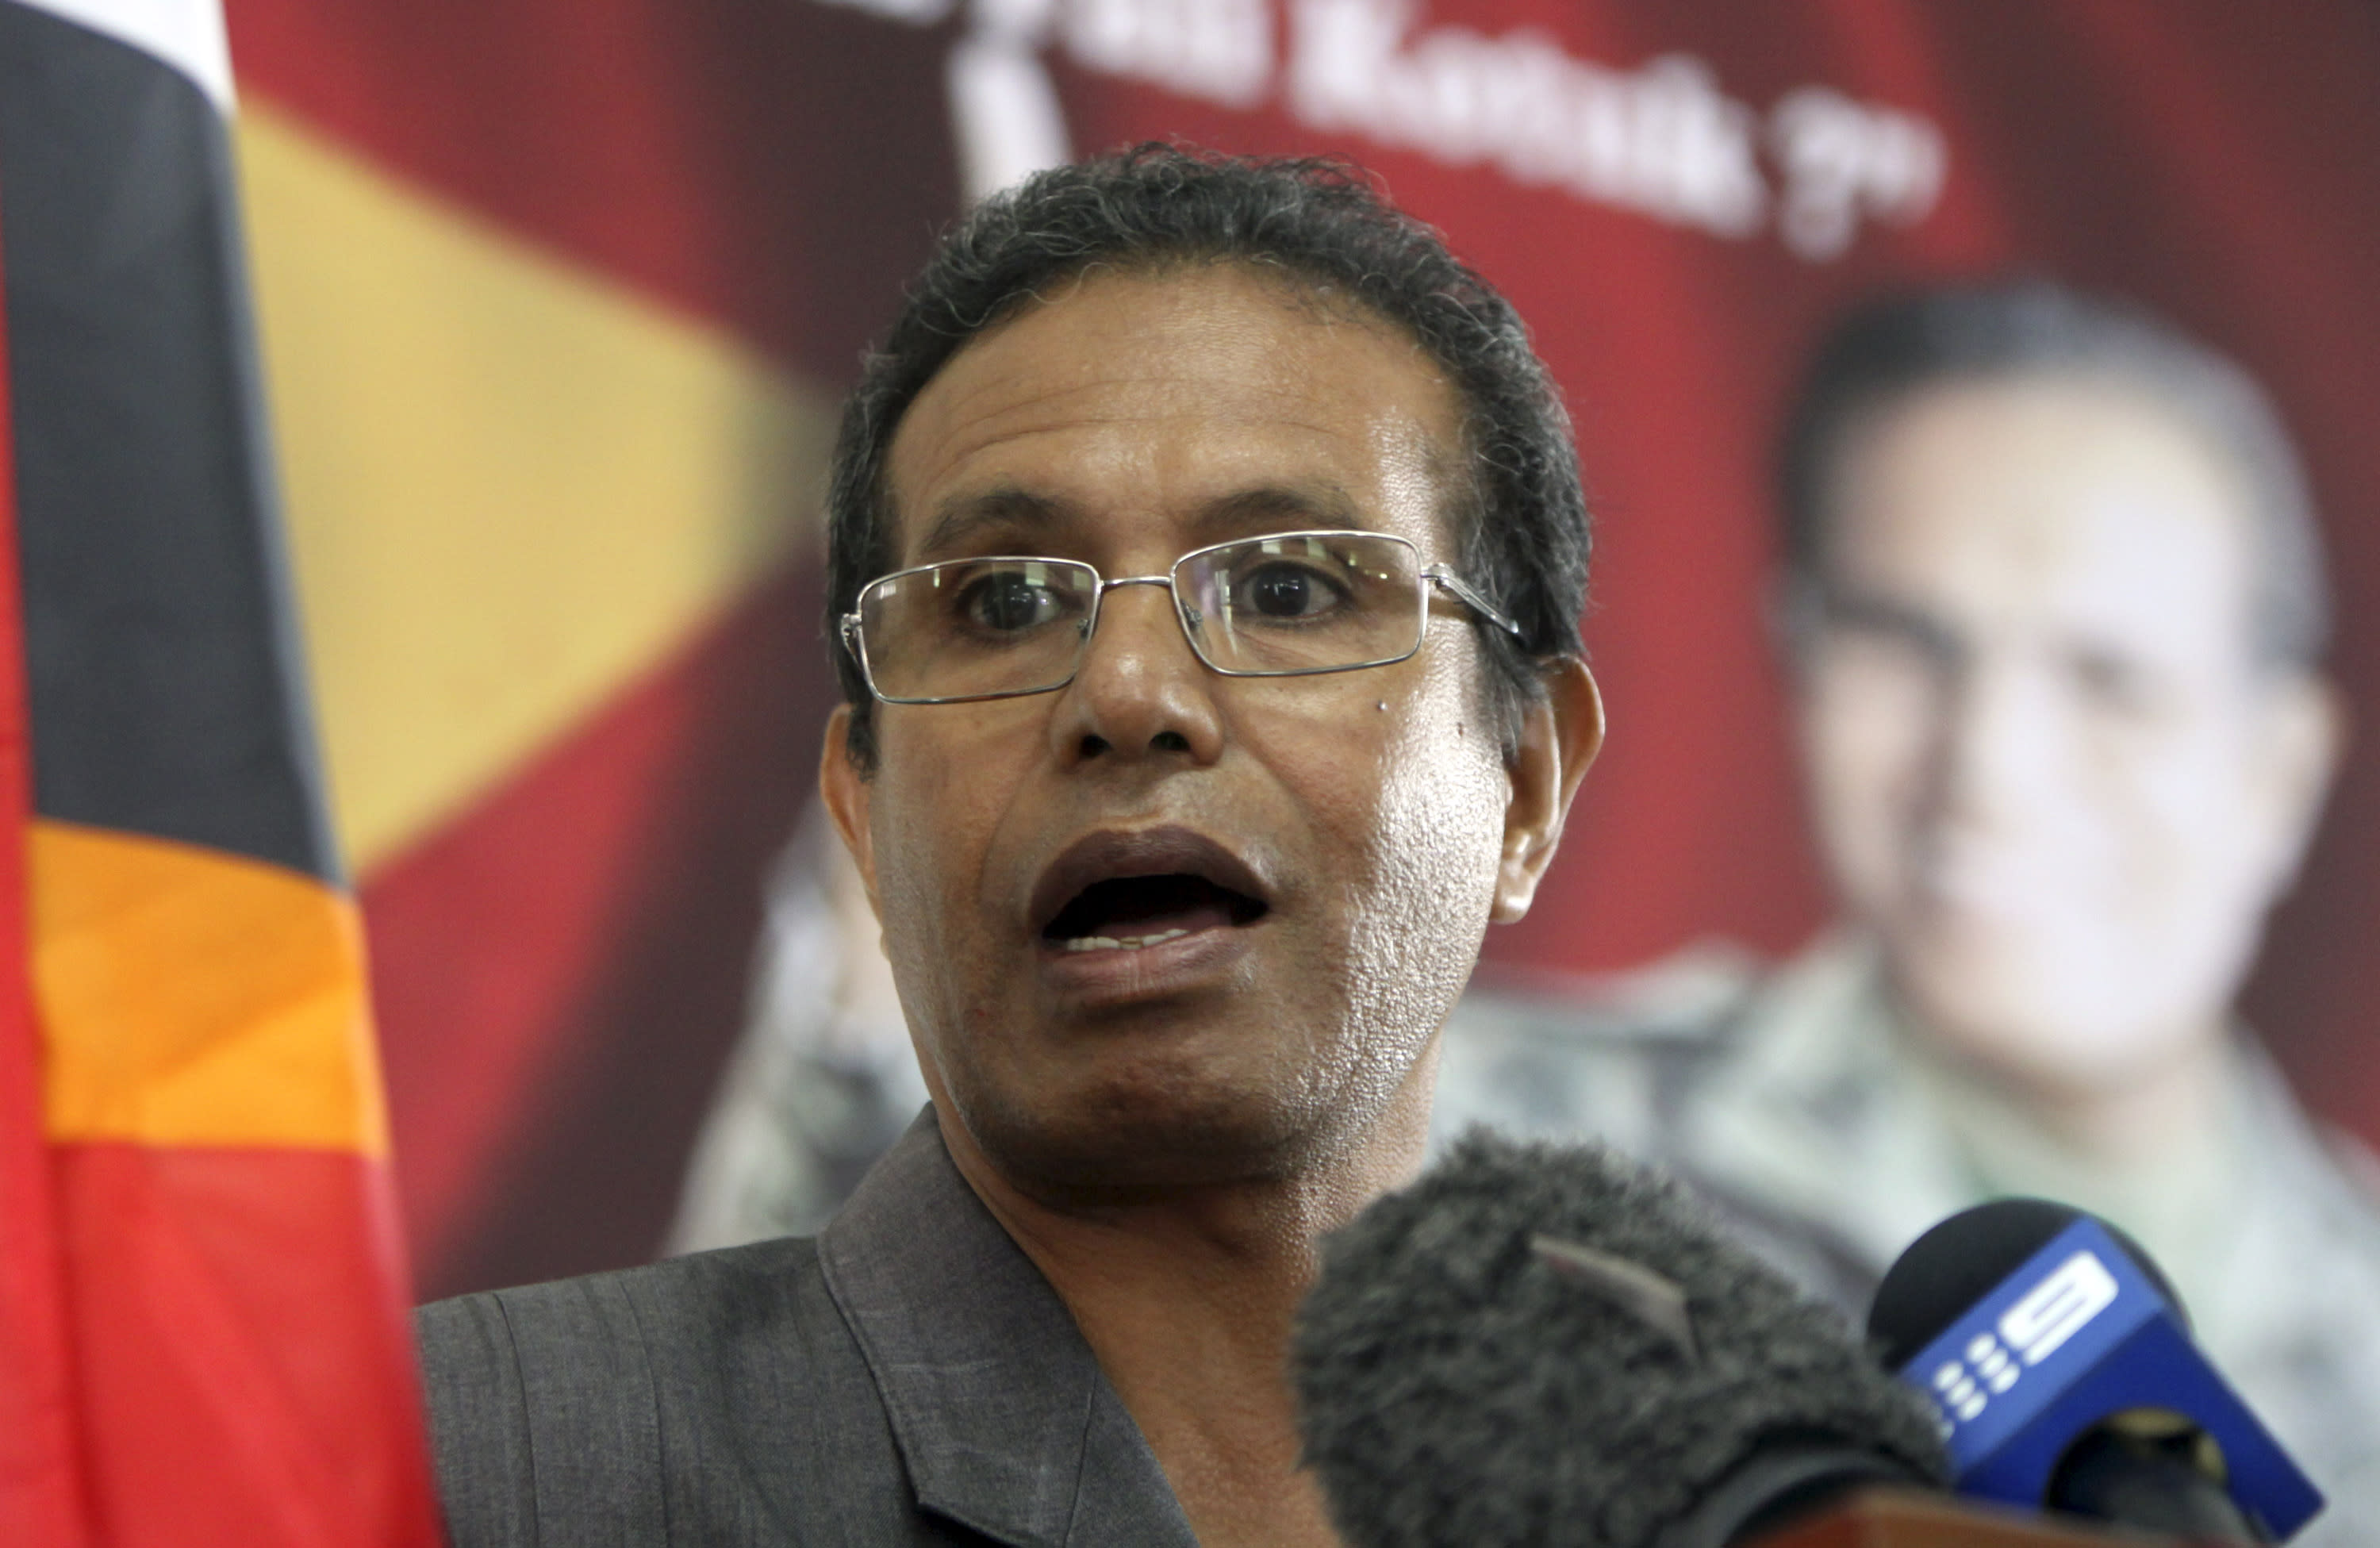 Former military chief and presidential candidate Taur Matan Ruak talks to media during a press conference in Dili, East Timor Sunday, March 18, 2012. East Timor voted for a new president Saturday in an election that tested the young nation's political stability ahead of the planned departure of U.N. troops later this year. Preliminary results indicated that no one would secure the 51 percent majority needed to win. Results from all 13 districts were expected to be announced Sunday. (AP Photo/Firdia Lisnawati)